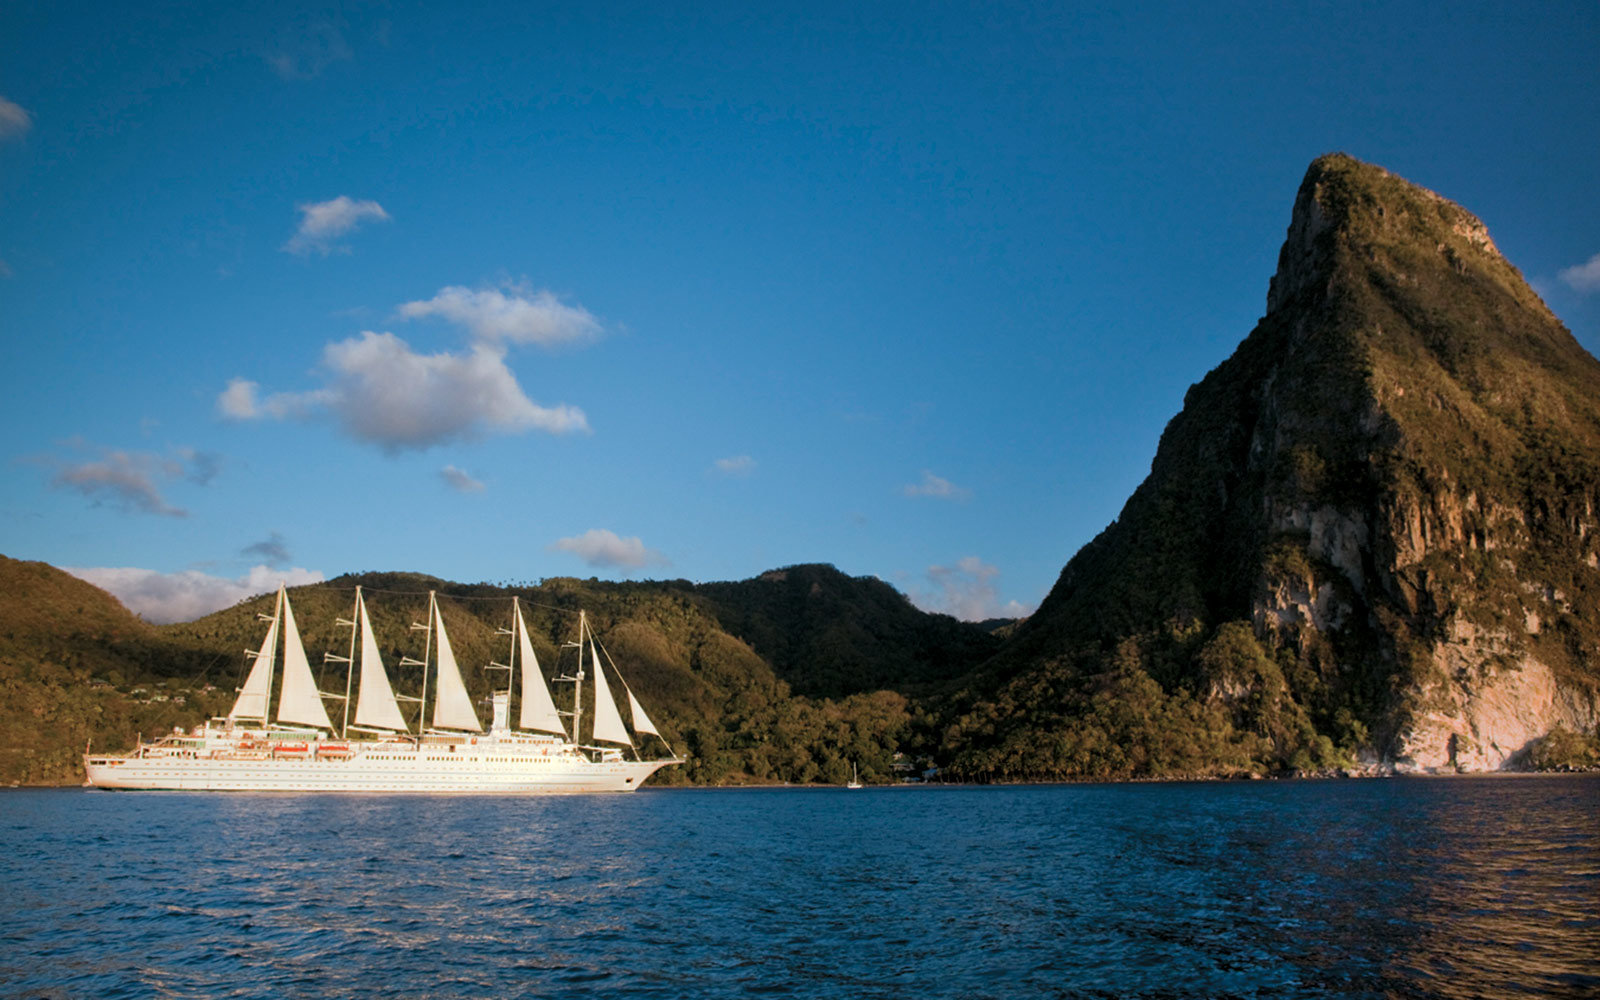 windstar-cruises-lead-MIDSHIPWB18.jpg